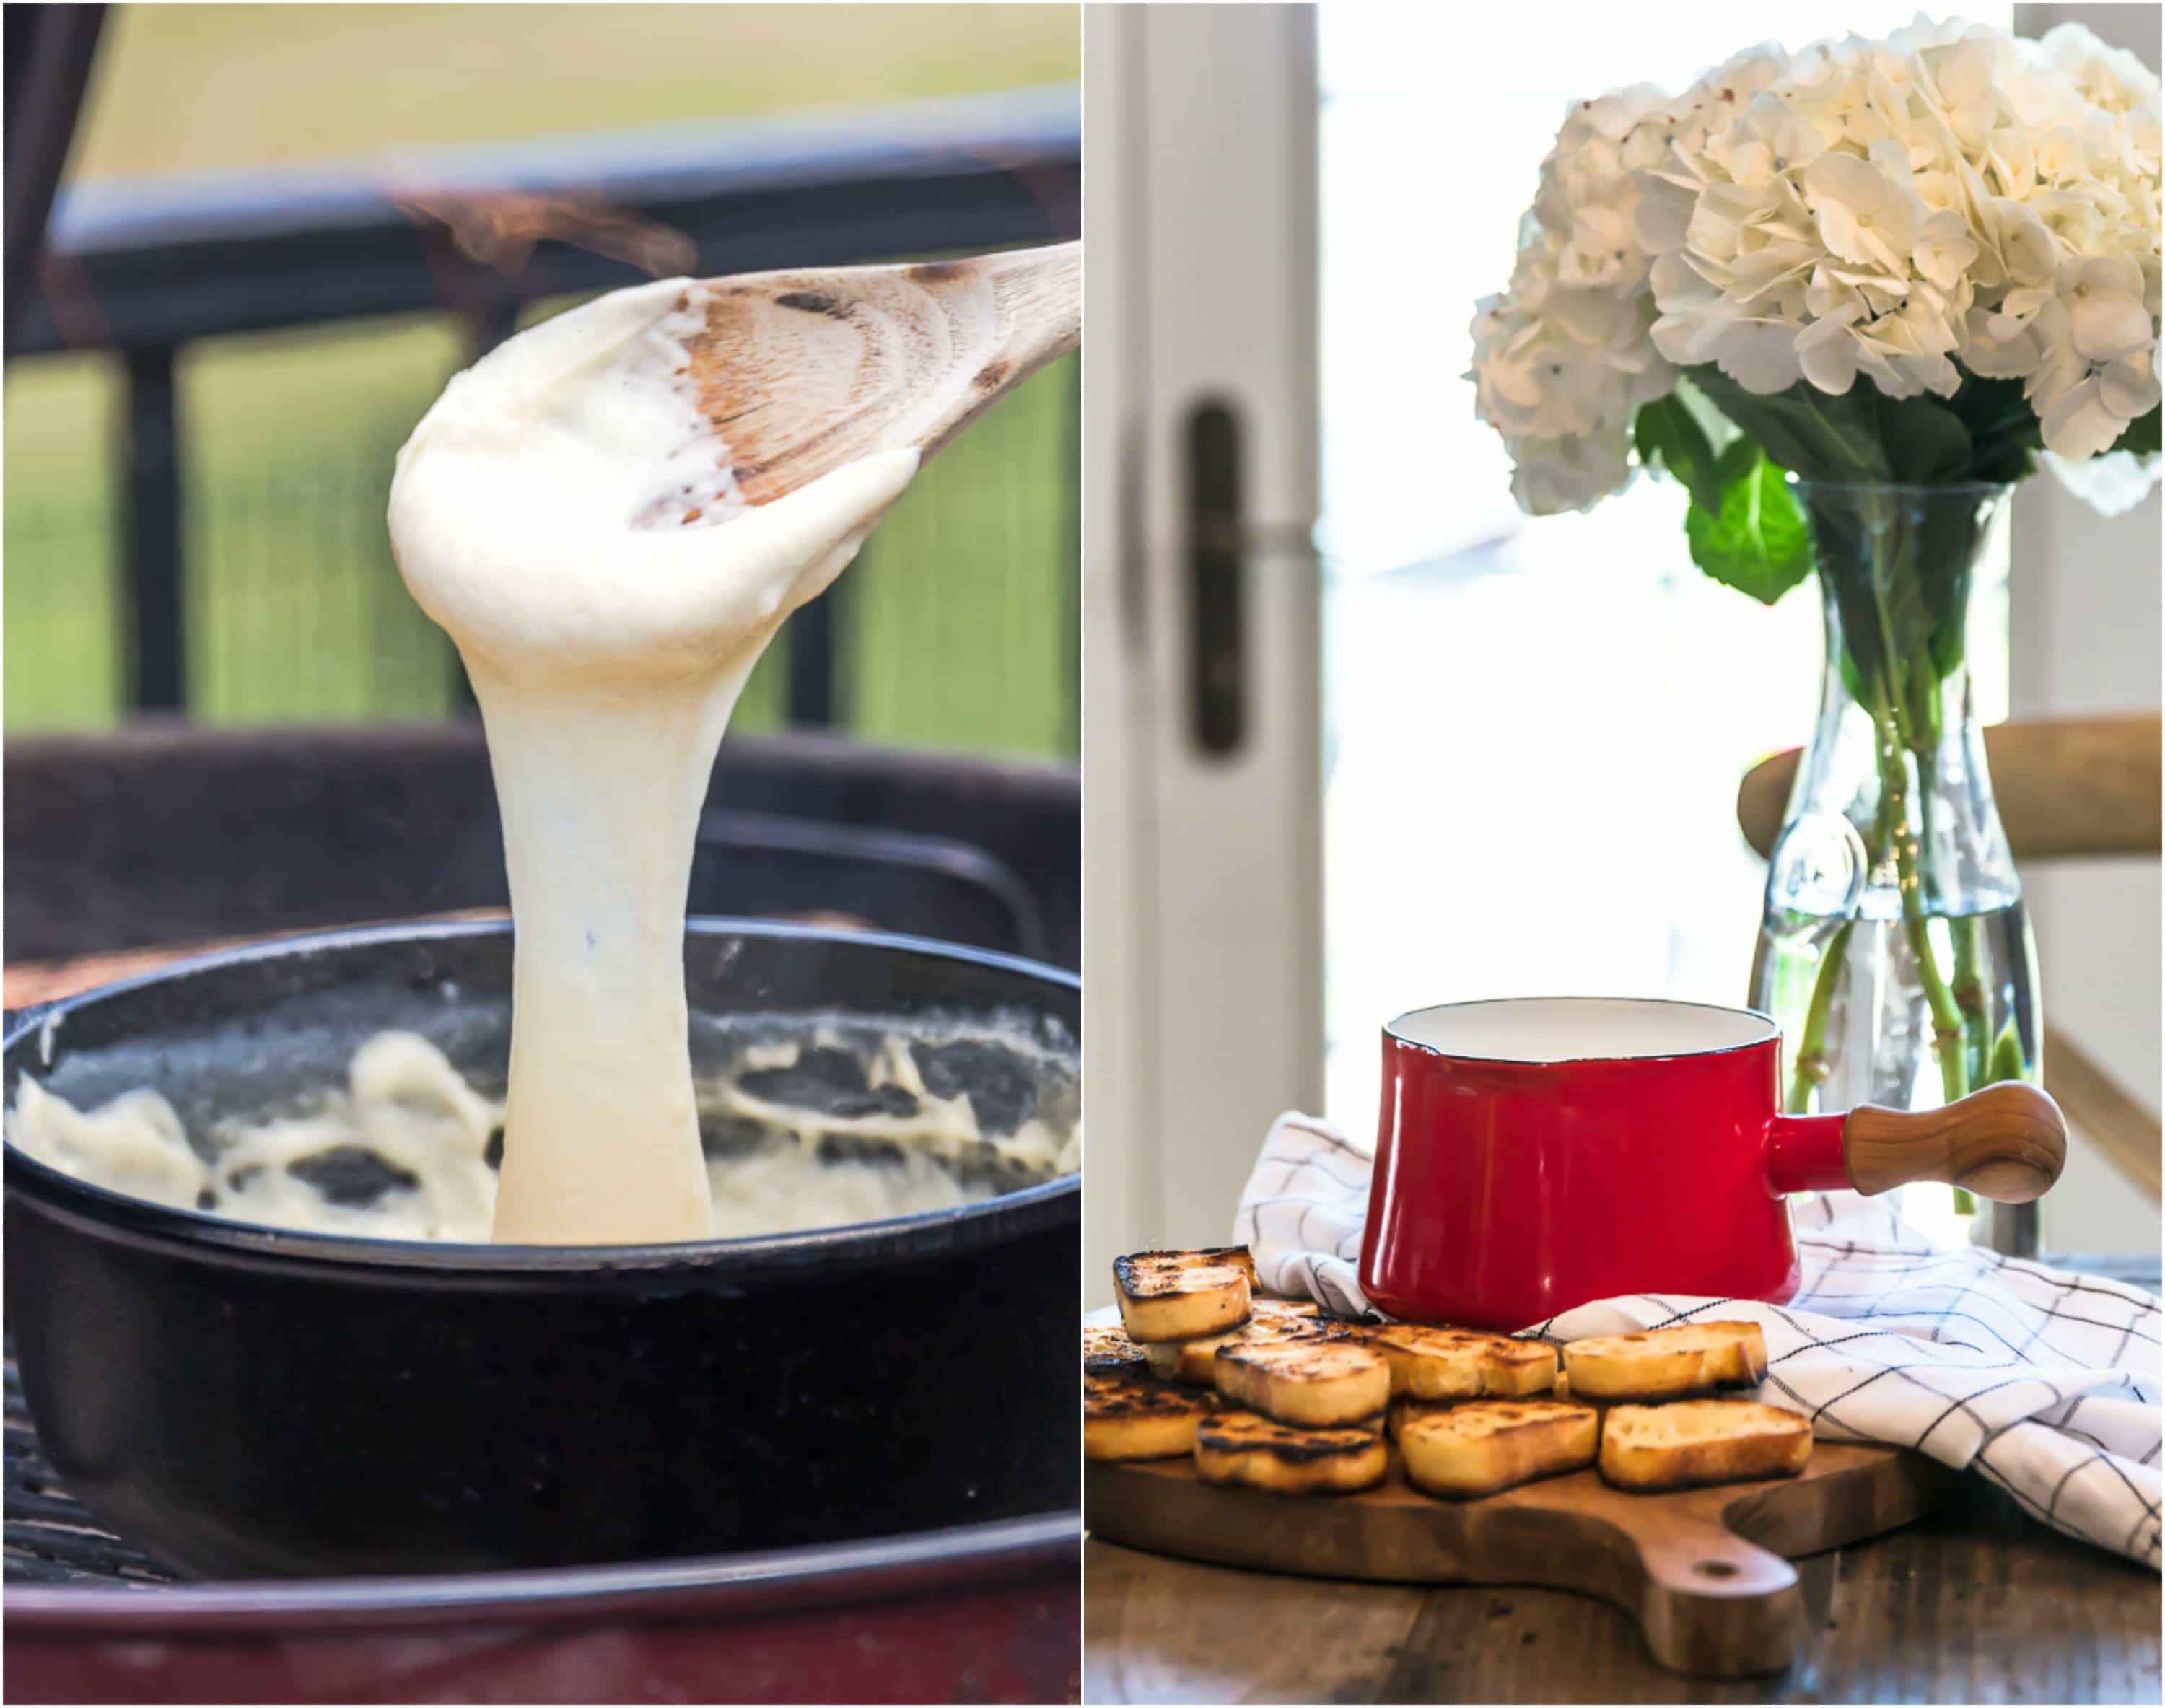 photo collage of cheese fondue pulled up with wooden spoon and toasted bread on a cutting board